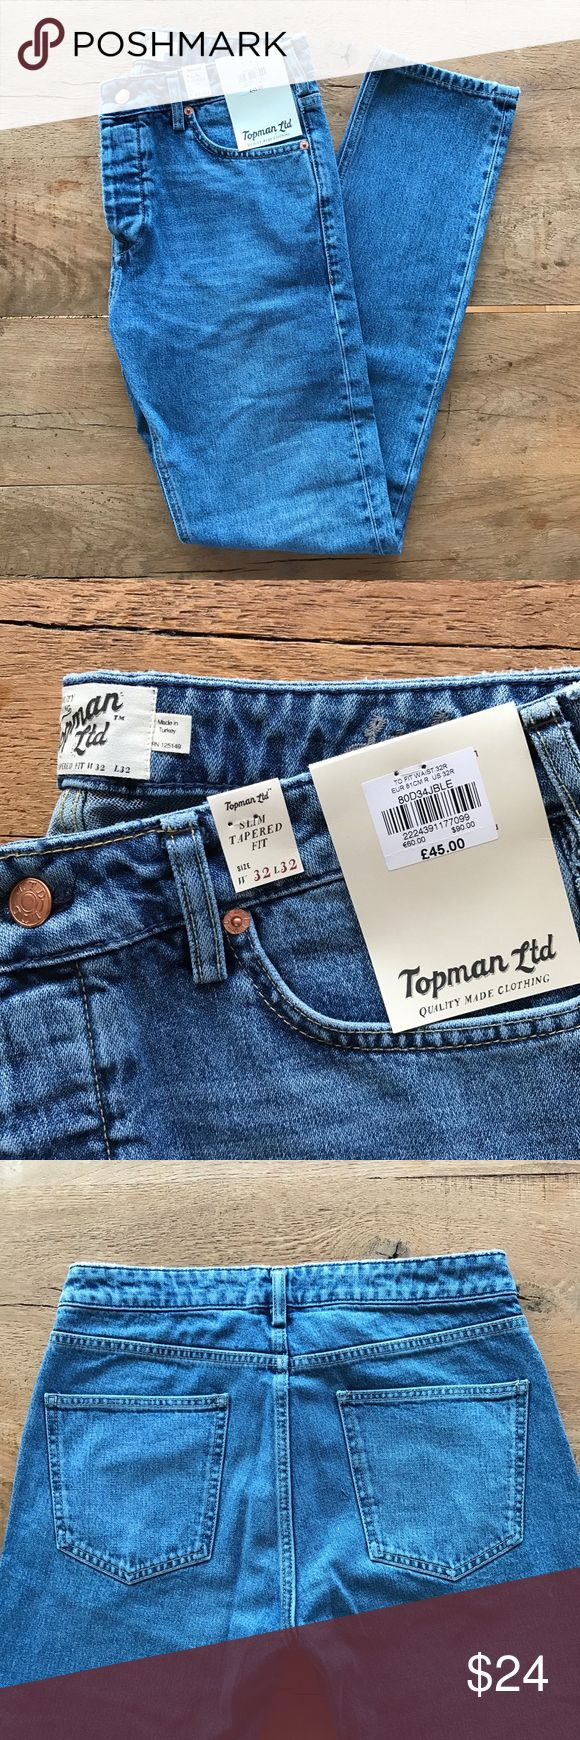 """Topman Slim Fit Denim NWT NWT. Topman """"slim tapered fit"""" jeans. 32"""" inseam, 12"""" ankle opening, 10.5"""" rise. 4-button fly. 100% cotton. Price tag is in £ because these were purchased in the U.K. Topman Jeans Slim"""